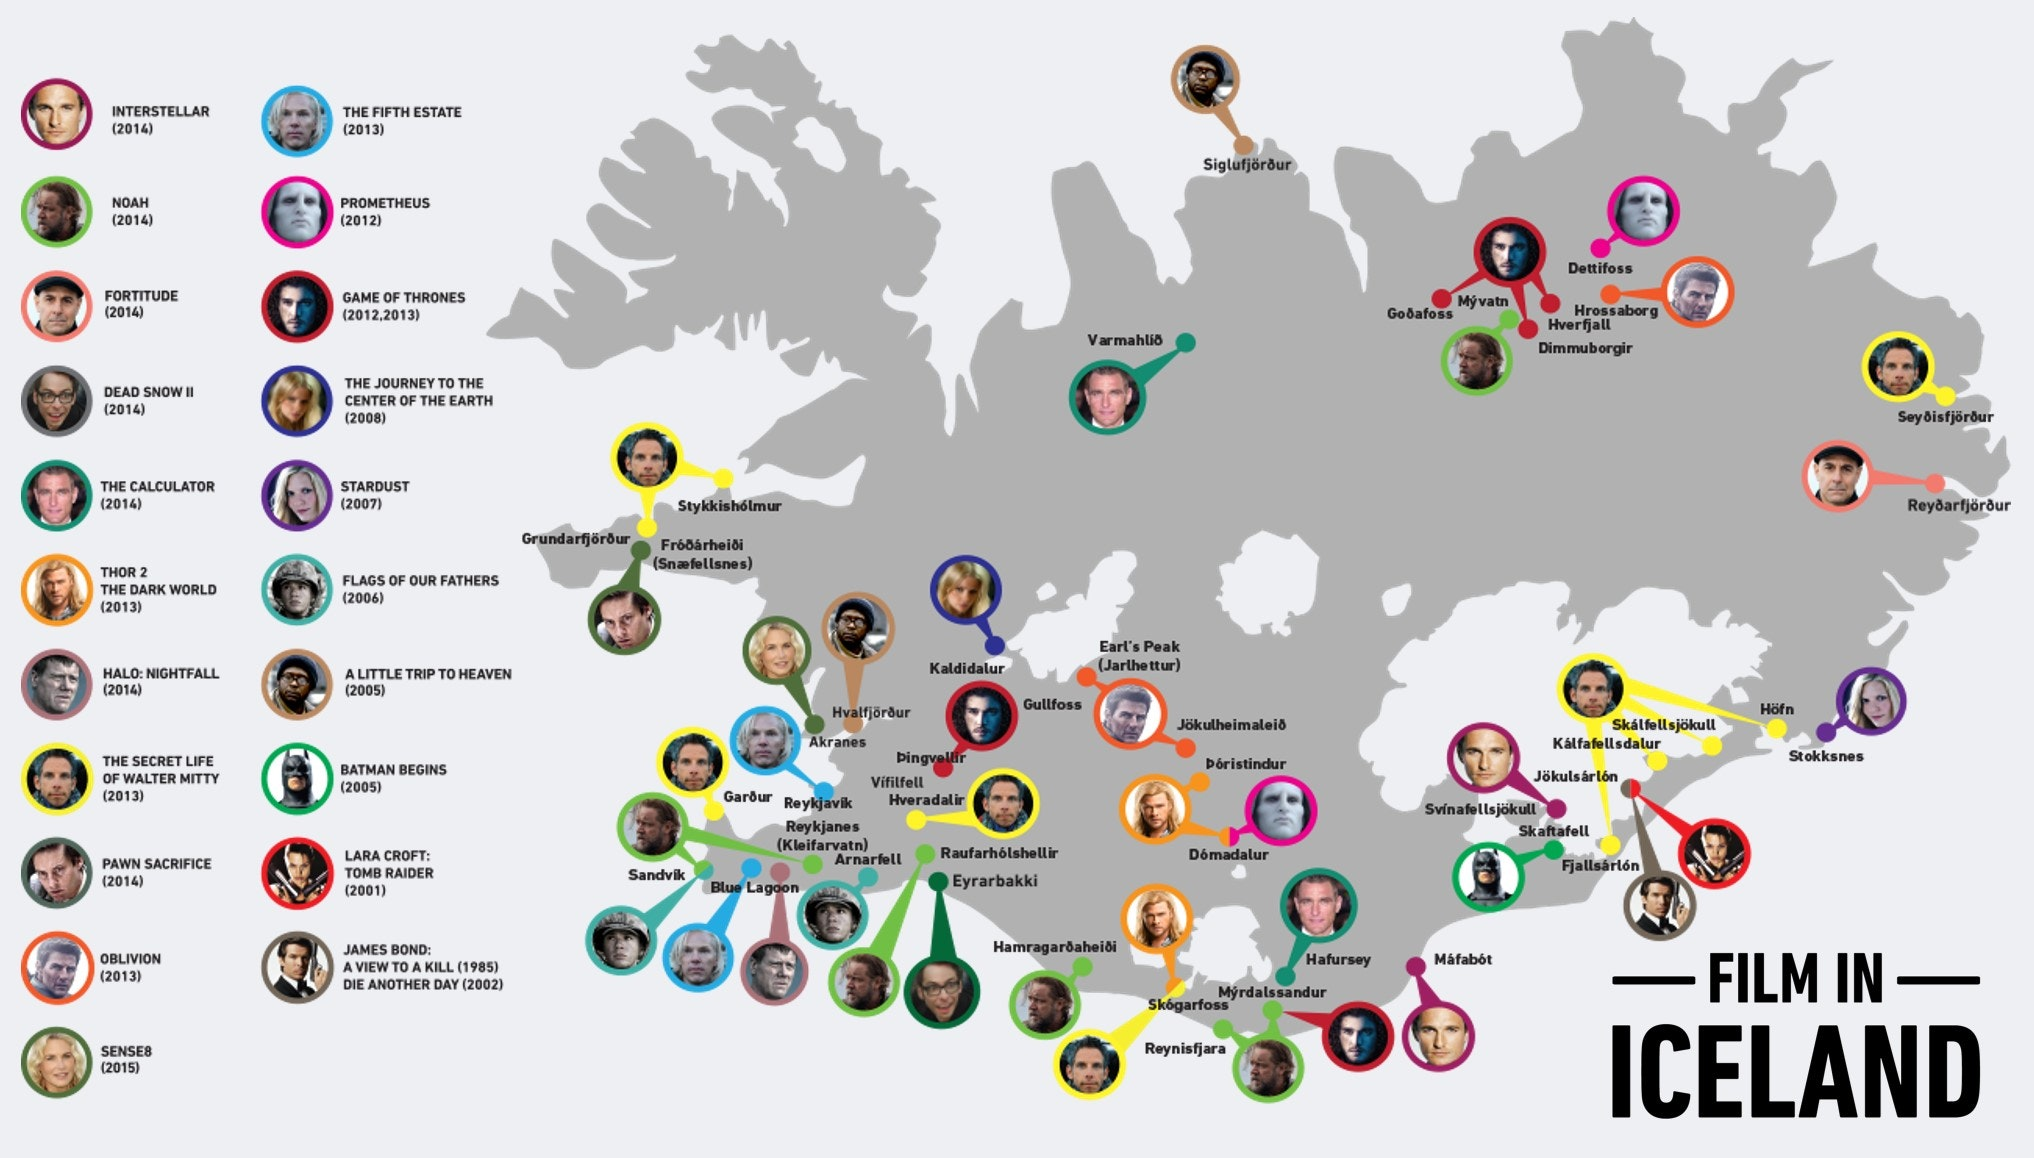 Filming locations in Iceland